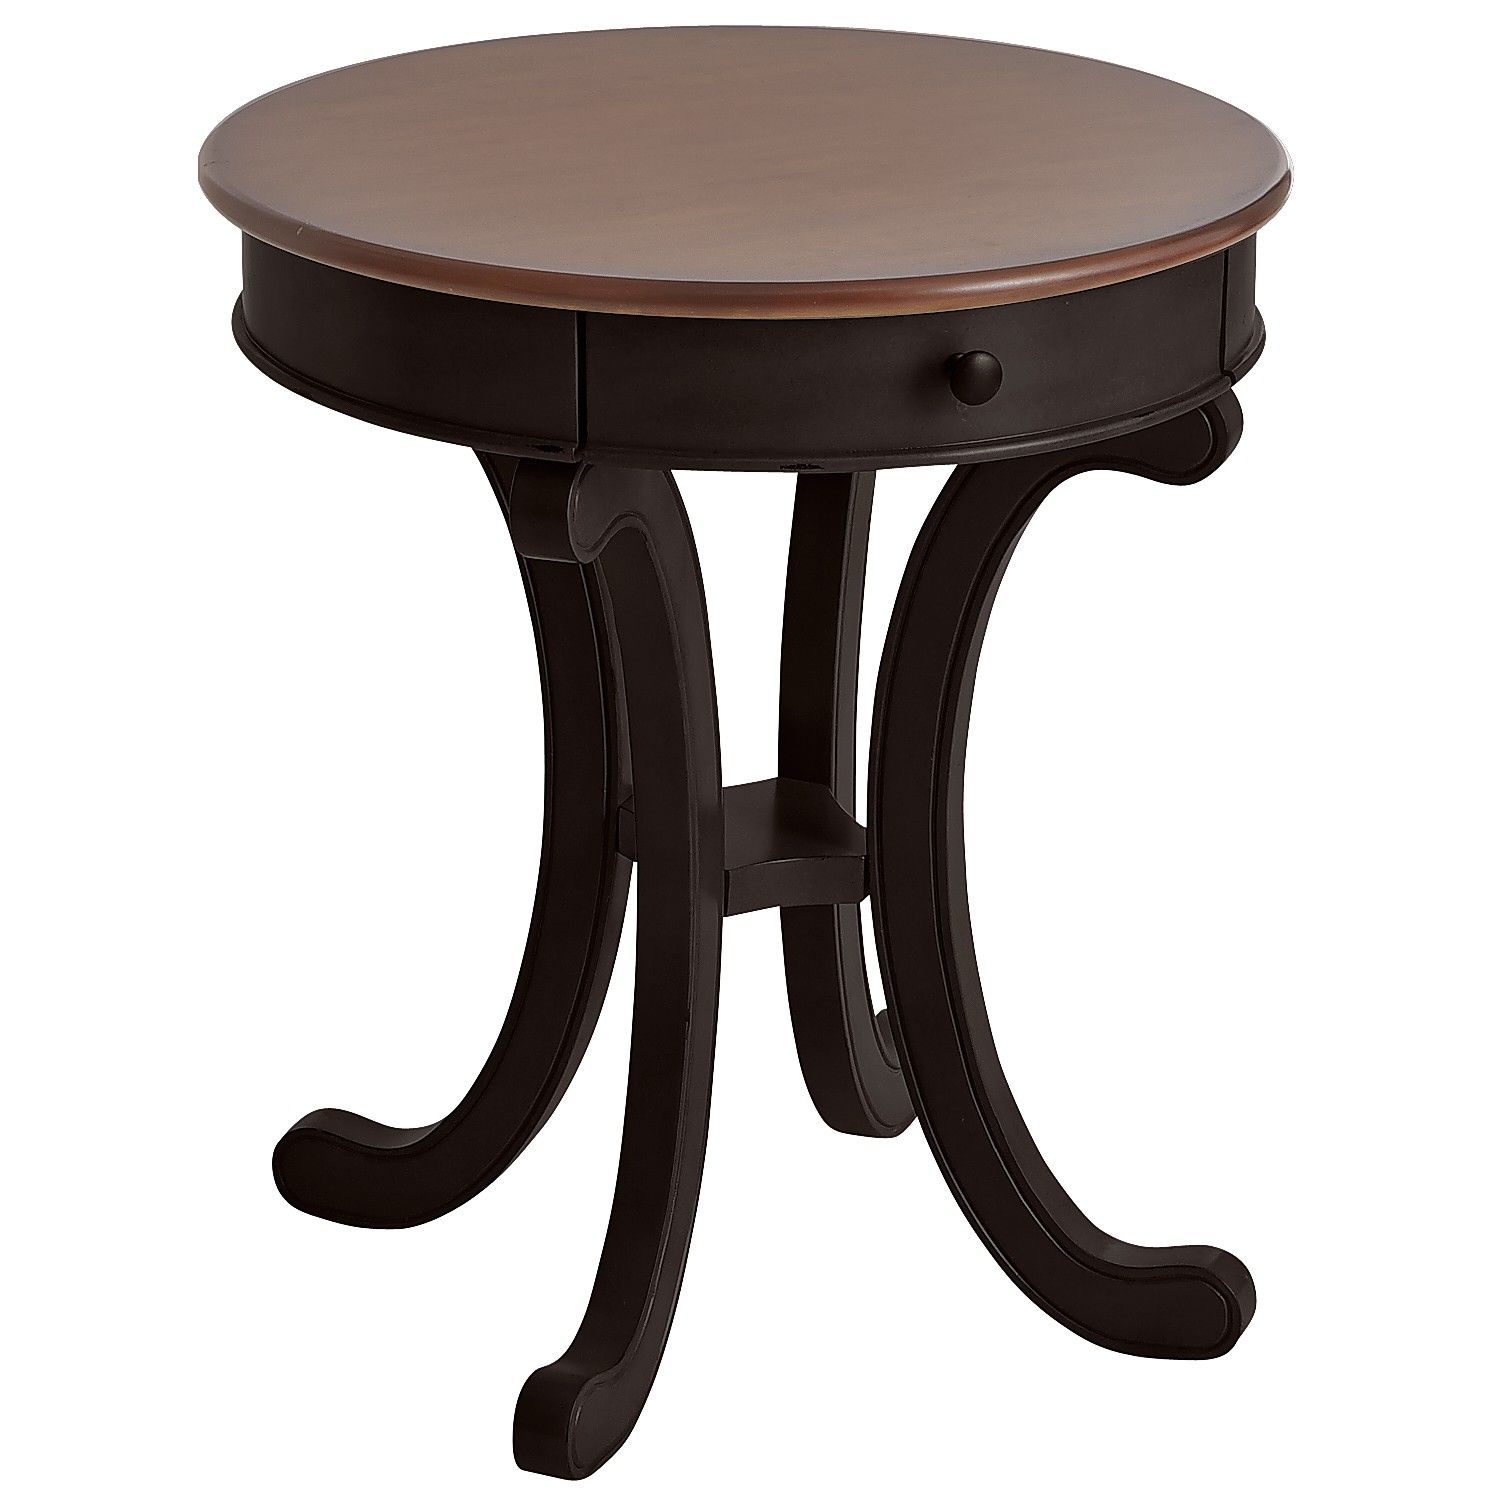 ella rubbed black accent table pier imports blackjack odds tables metal bunnings chairs and modern kitchen clocks circular glass side wooden bar contemporary bedroom lamps